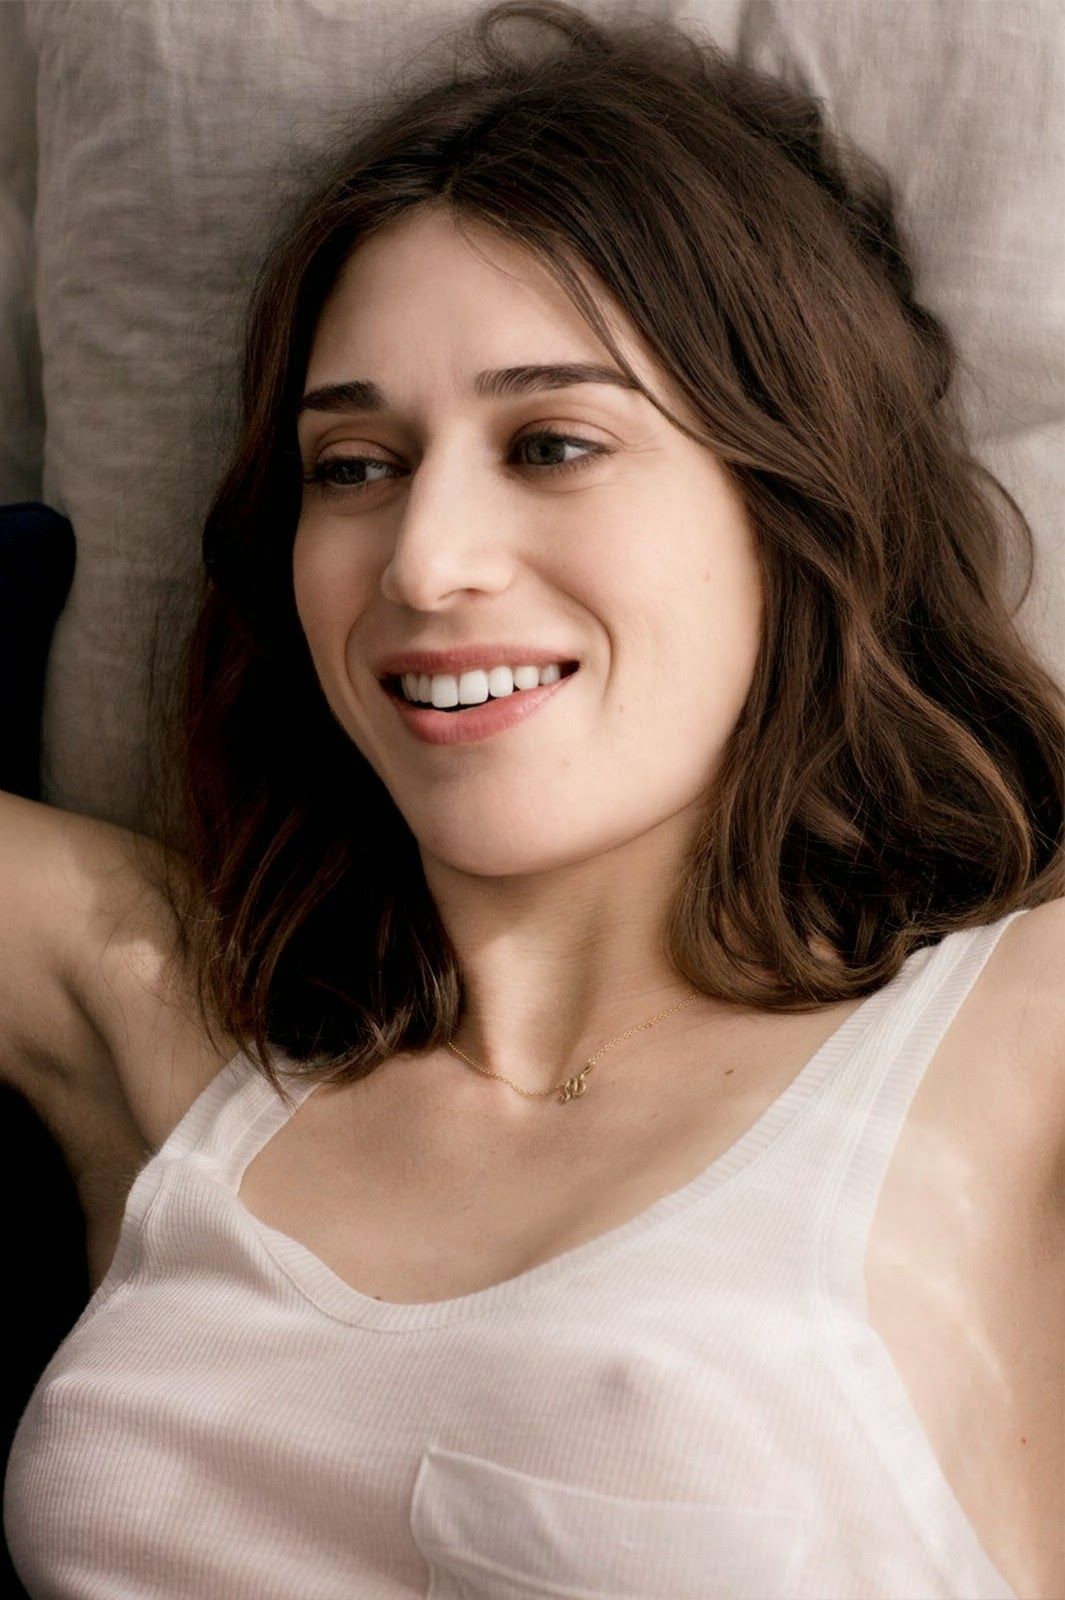 Discussion on this topic: Mildred Joanne Smith, lizzy-caplan/